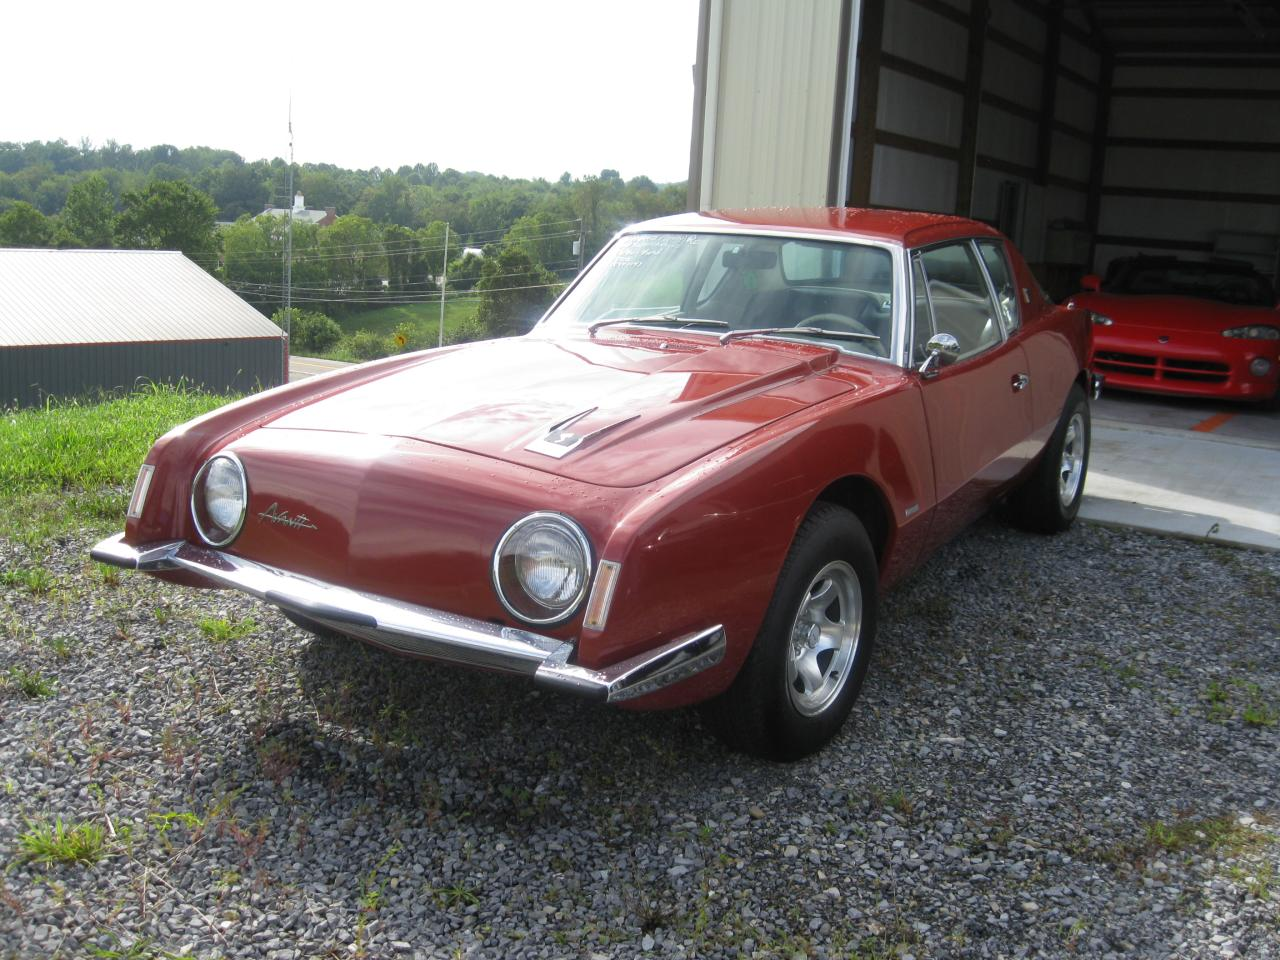 Bristol - car lot 63 Studebaker Avanti R2 - red (2) | Flickr ...